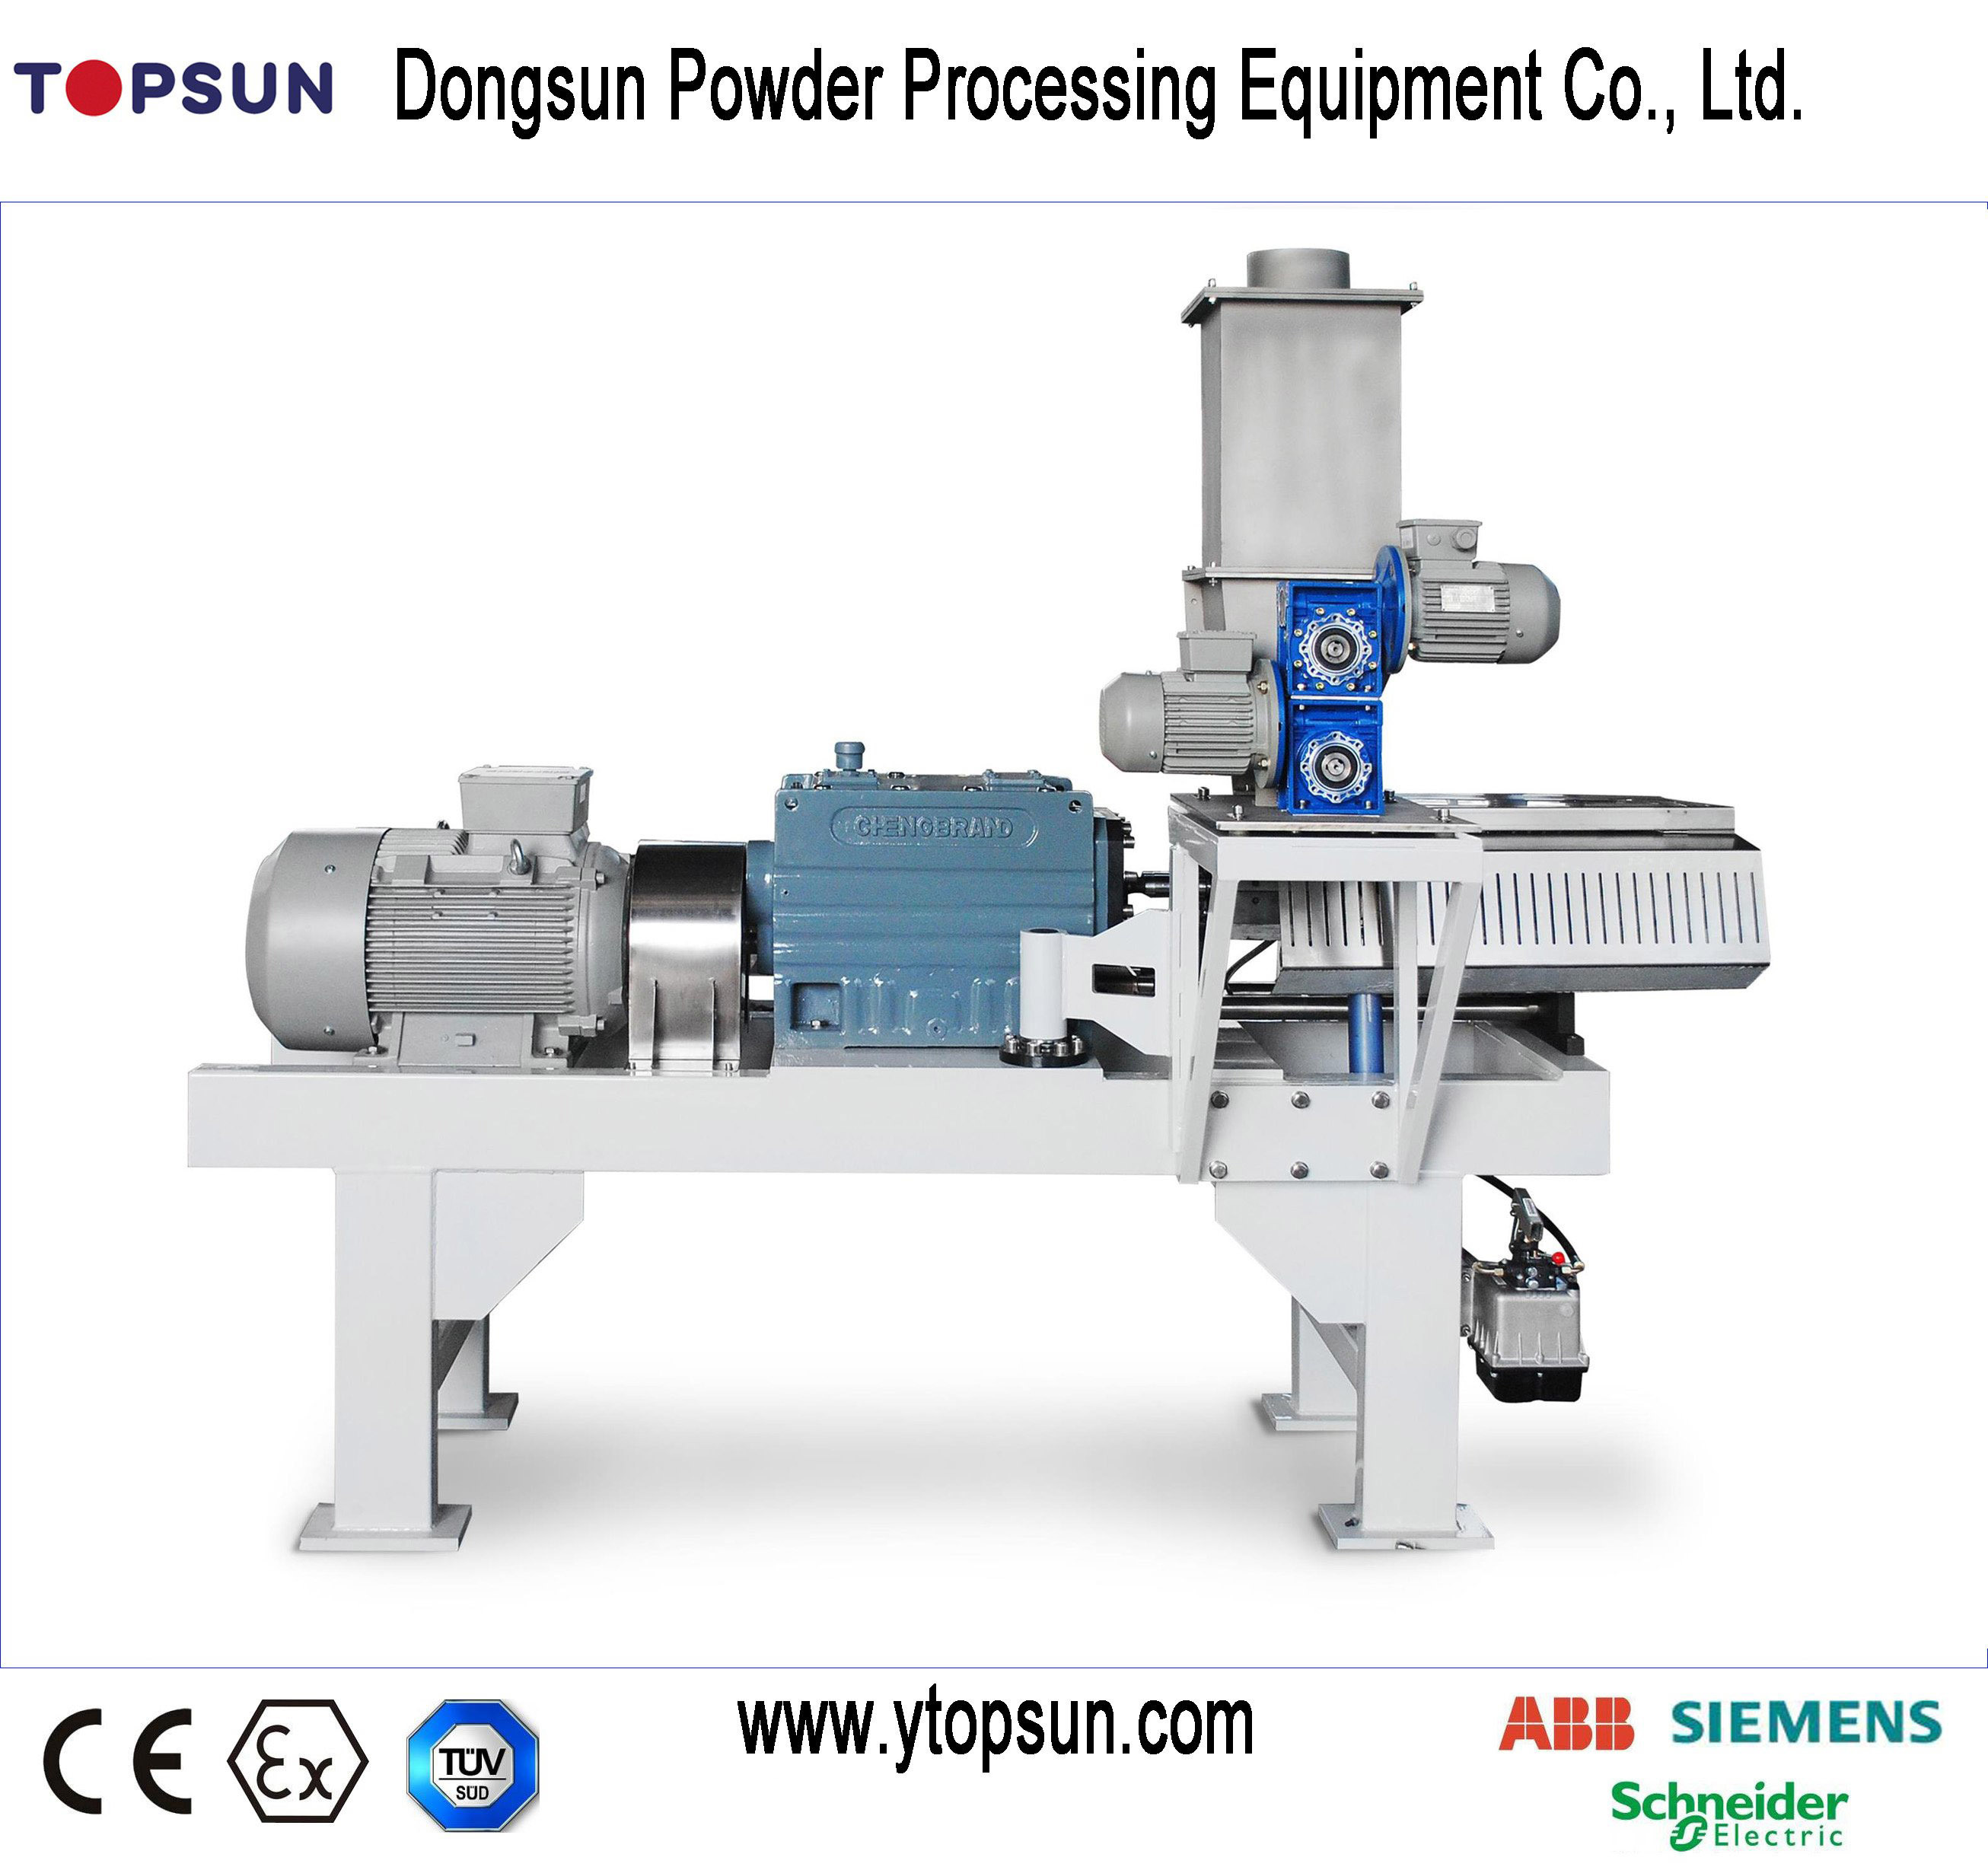 Ce Proved Twin Screw Extruder for Powder Coatings